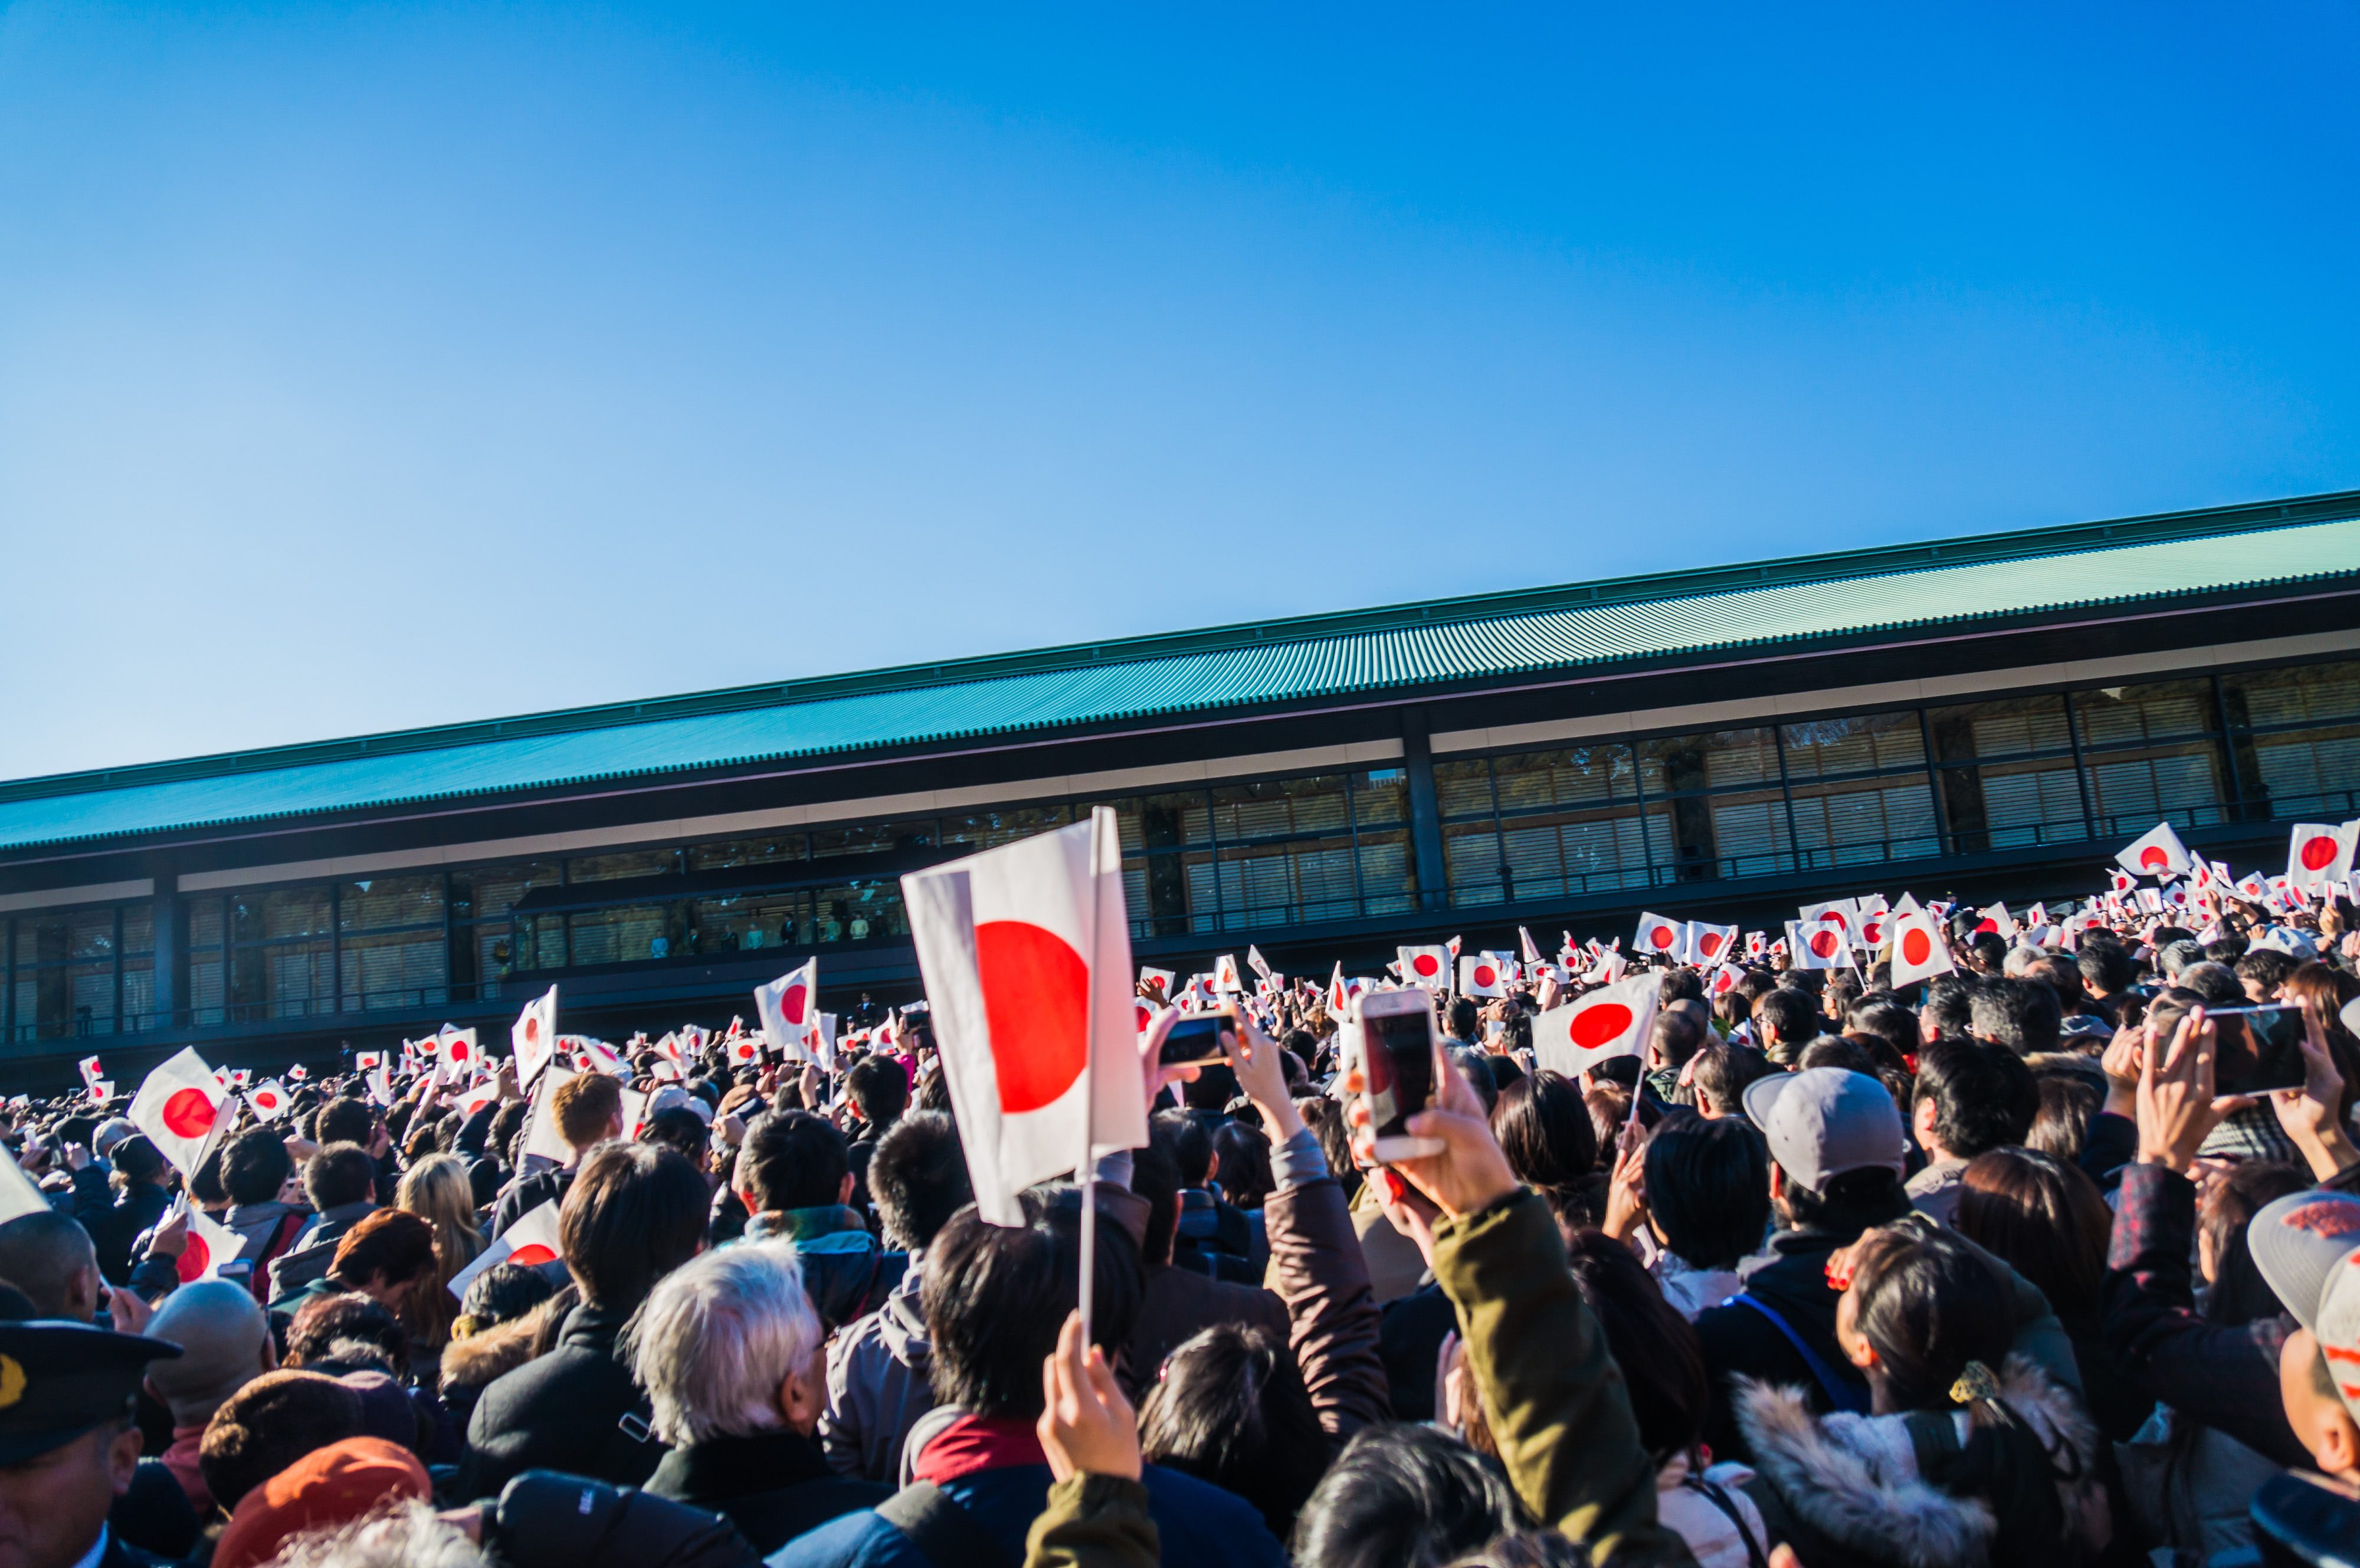 People holding Japanese flag in hand